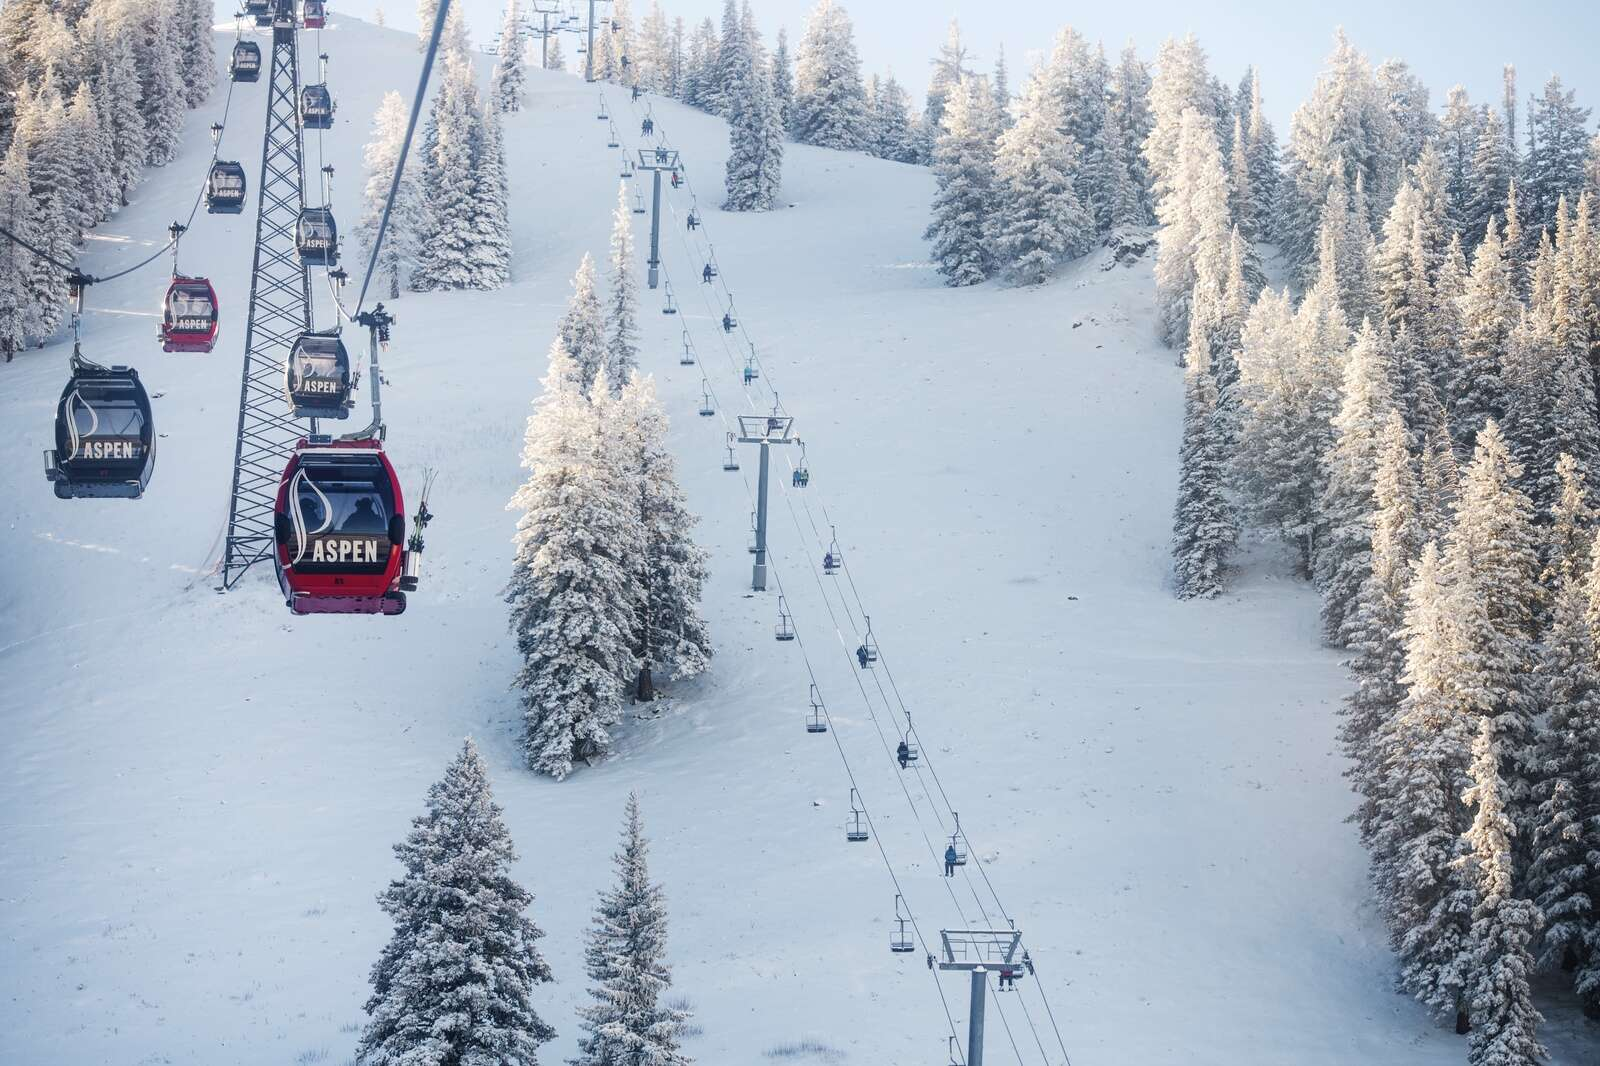 Skiers utilize both the Silver Queen Gondola and Bell Mountain Lift on opening day at Aspen Mountain on Wednesday, Nov. 25, 2020. (Kelsey Brunner/The Aspen Times)